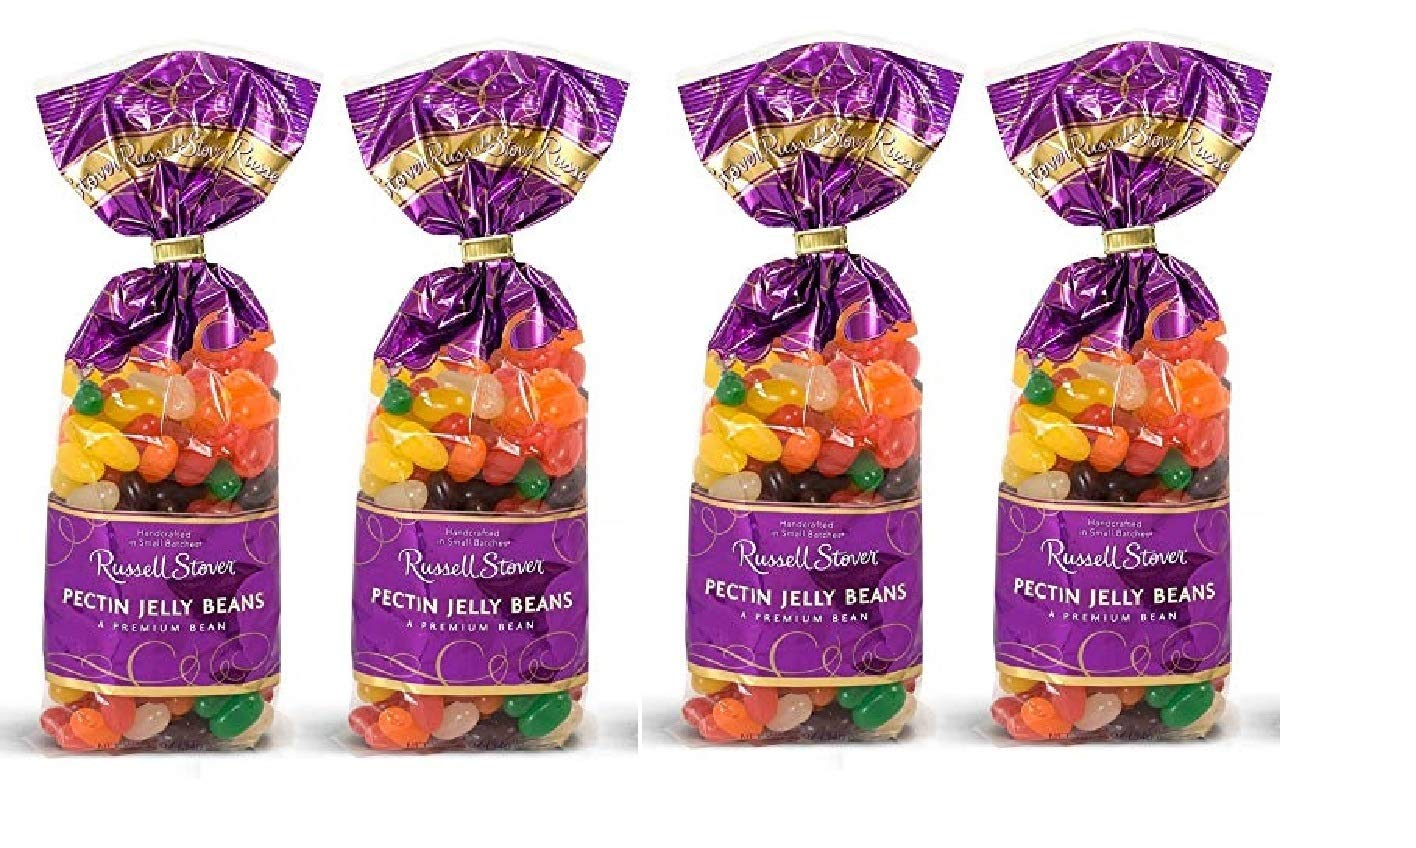 Russell Stover Pectin Jelly Beans for Easter or Any Occasion - 12 oz. Bag (4 Pack - 48 Total Oz) by Russell Stover